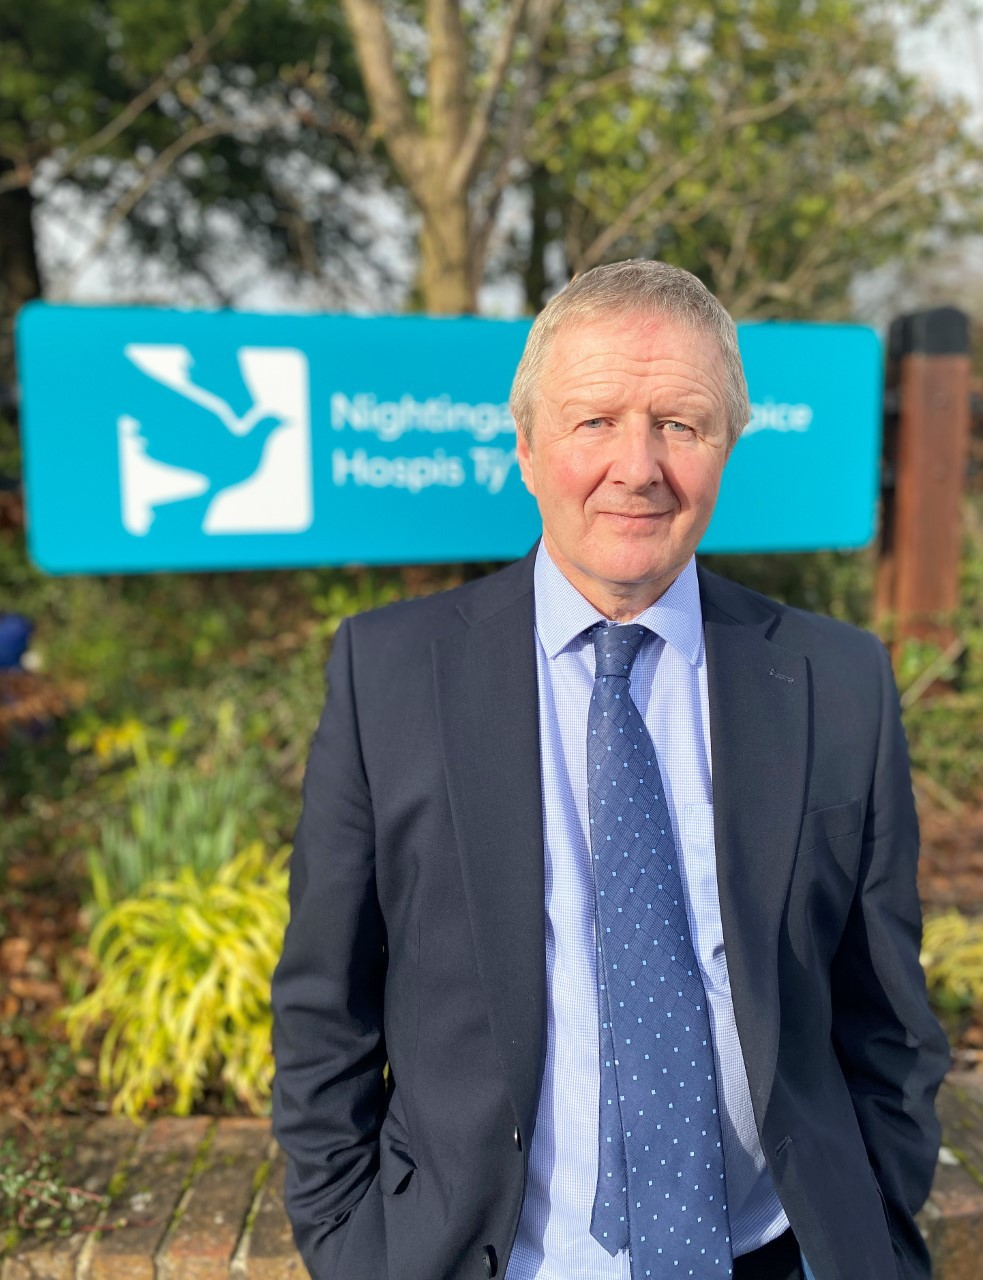 Steve Parry, chief executive of Nightingale House Hospice.